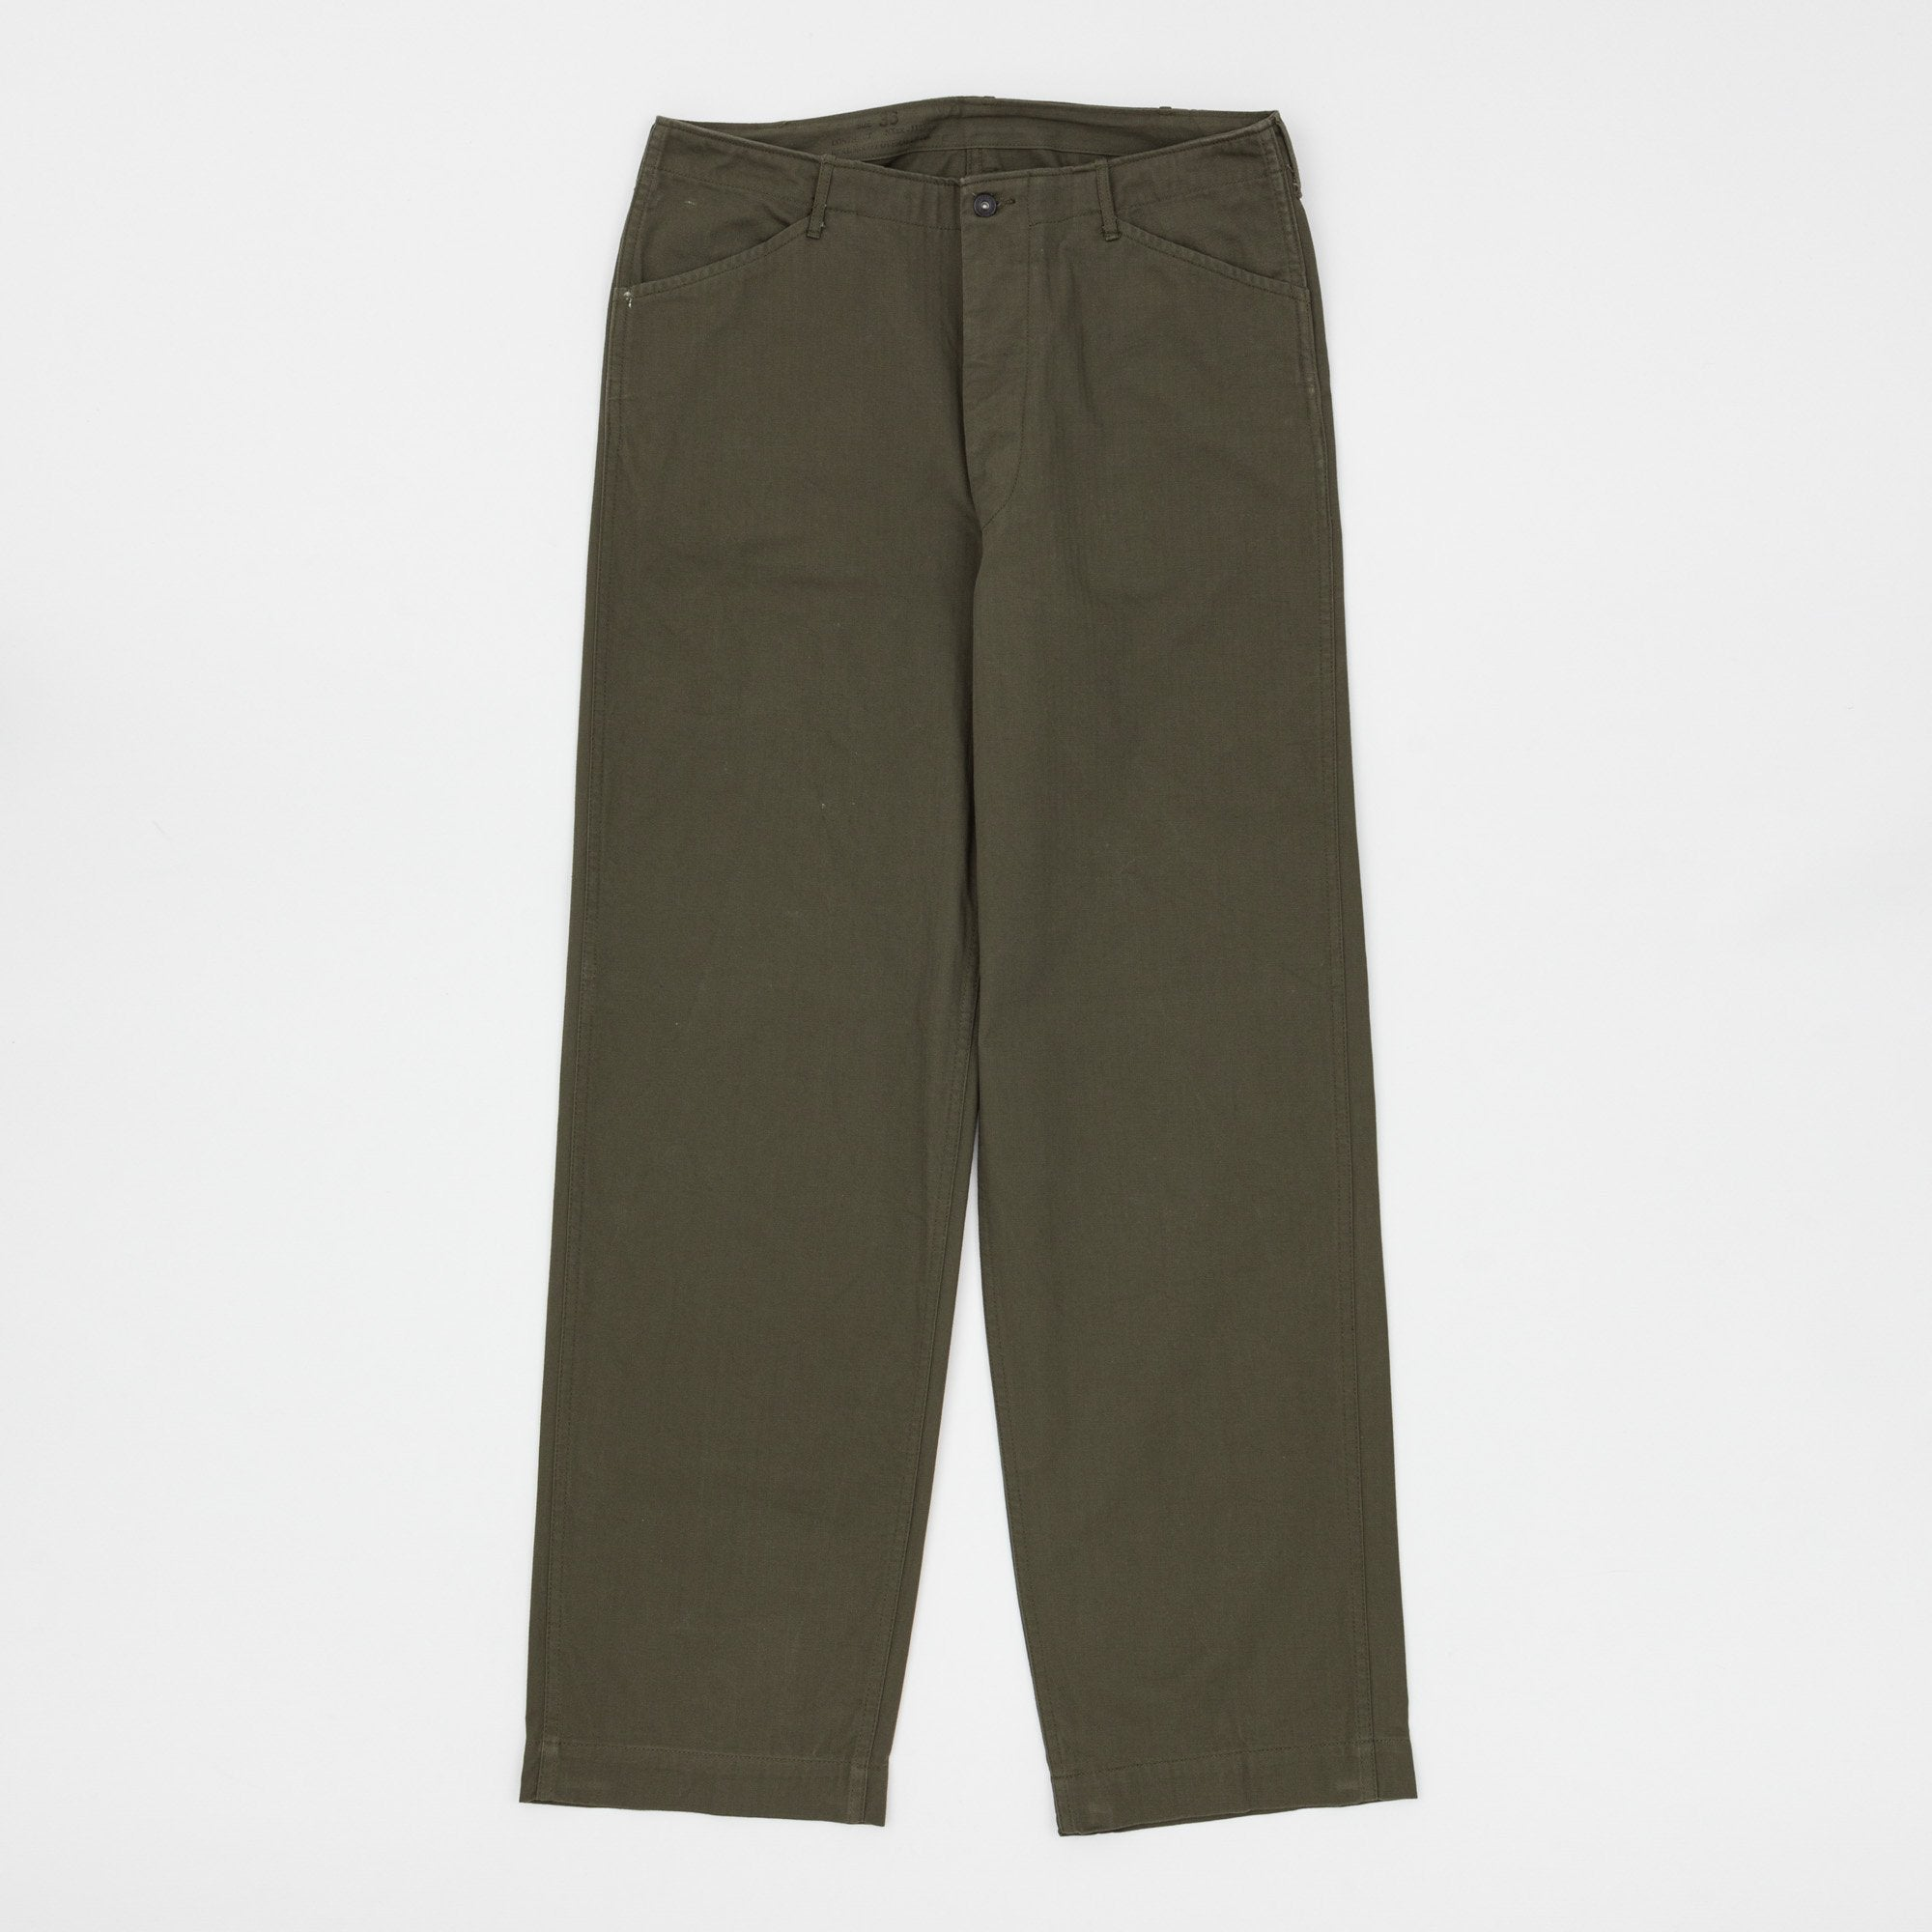 The Real McCoy's N-3 Utility Pant